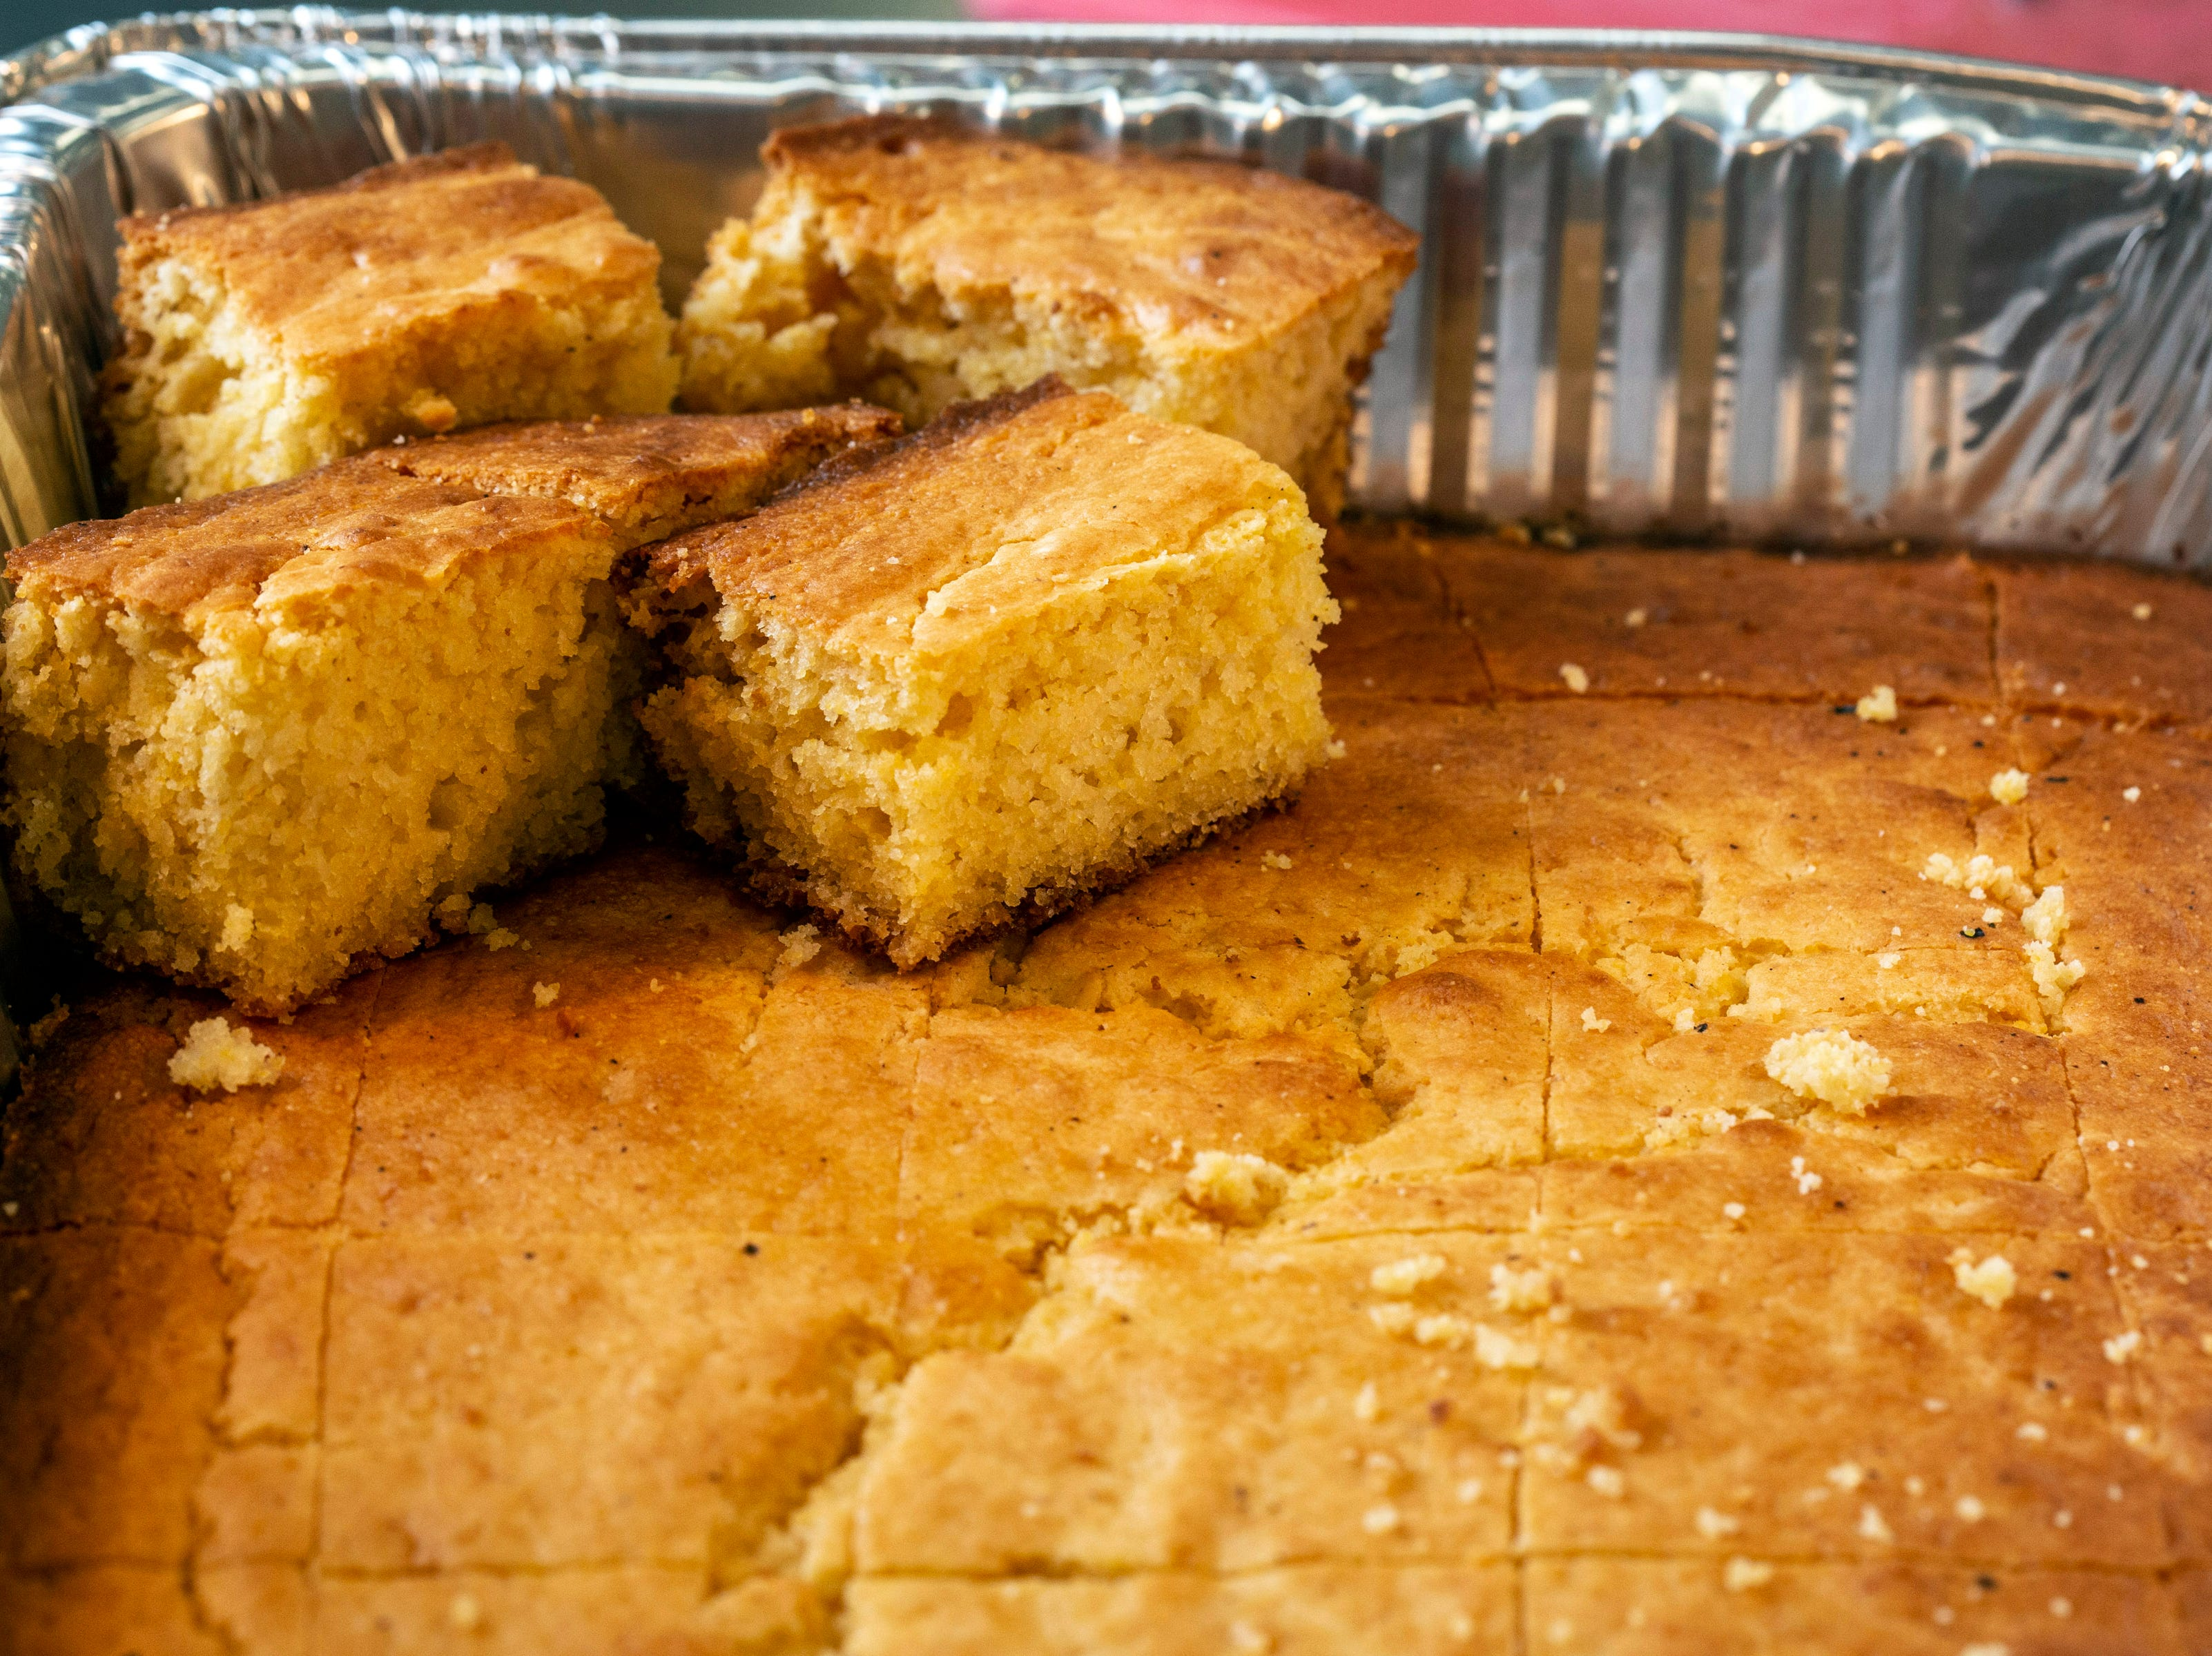 Homemade cornbread comes with every serving at Lucretia's Kitchen. 9/9/18